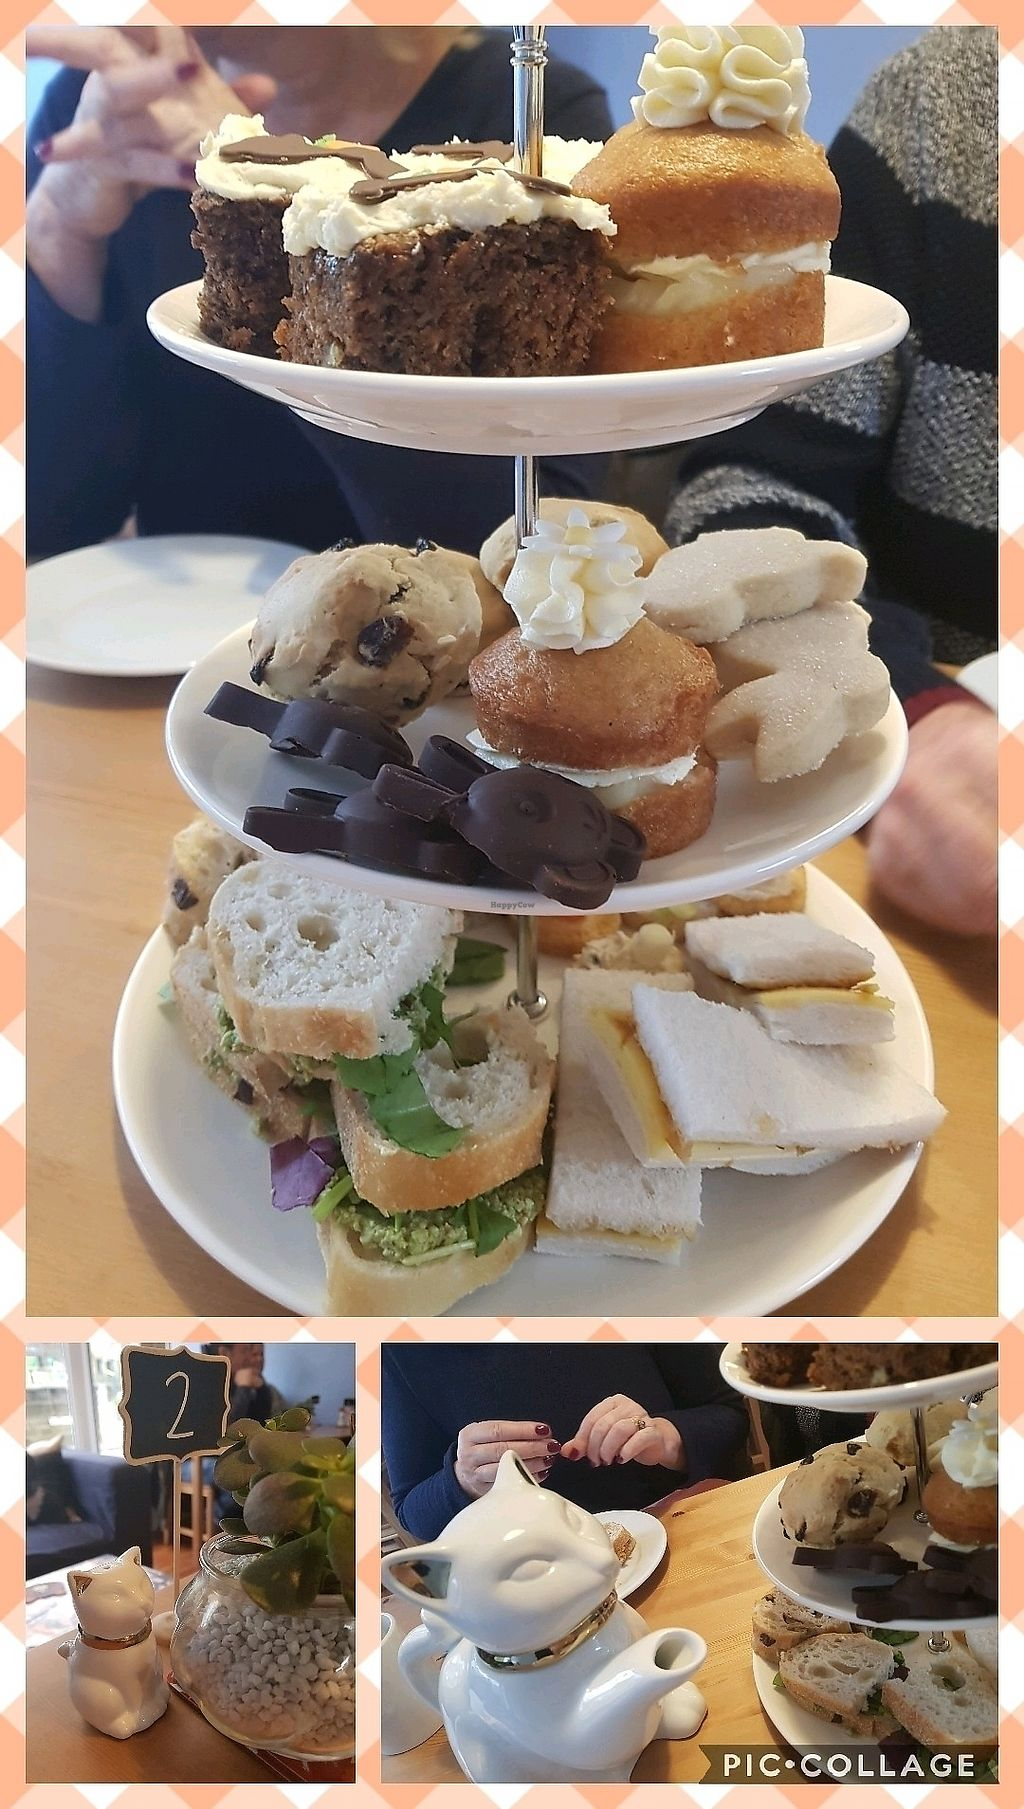 """Photo of Meow Cafe  by <a href=""""/members/profile/Knitasfuck"""">Knitasfuck</a> <br/>Eaater Sunday afternoon tea (vegan), it was delicious  <br/> April 1, 2018  - <a href='/contact/abuse/image/115728/379423'>Report</a>"""